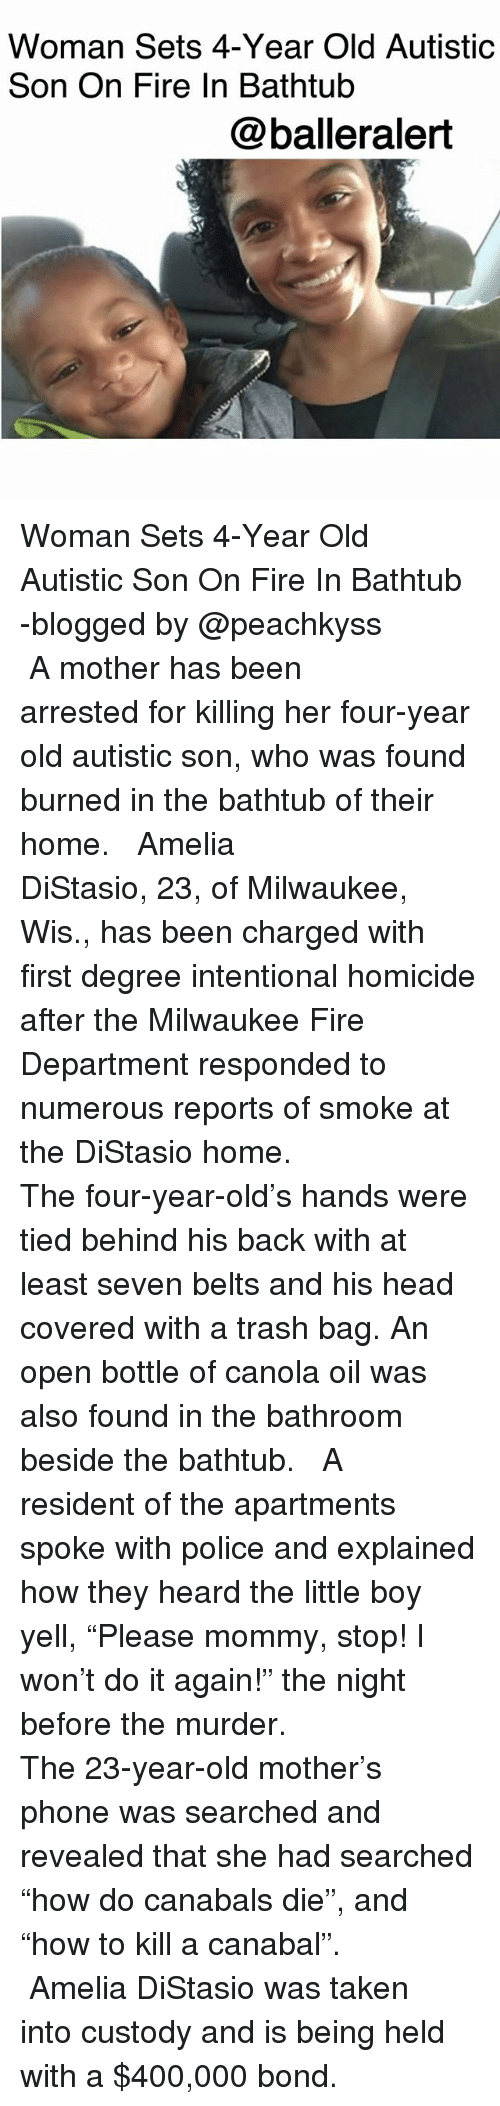 """Do It Again, Fire, and Head: Woman Sets 4-Year Old Autistic  Son On Fire In Bathtub  @balleralert Woman Sets 4-Year Old Autistic Son On Fire In Bathtub -blogged by @peachkyss ⠀⠀⠀⠀⠀⠀⠀ ⠀⠀⠀⠀⠀⠀⠀ A mother has been arrested for killing her four-year old autistic son, who was found burned in the bathtub of their home. ⠀⠀⠀⠀⠀⠀⠀ ⠀⠀⠀⠀⠀⠀⠀ Amelia DiStasio, 23, of Milwaukee, Wis., has been charged with first degree intentional homicide after the Milwaukee Fire Department responded to numerous reports of smoke at the DiStasio home. ⠀⠀⠀⠀⠀⠀⠀ ⠀⠀⠀⠀⠀⠀⠀ The four-year-old's hands were tied behind his back with at least seven belts and his head covered with a trash bag. An open bottle of canola oil was also found in the bathroom beside the bathtub. ⠀⠀⠀⠀⠀⠀⠀ ⠀⠀⠀⠀⠀⠀⠀ A resident of the apartments spoke with police and explained how they heard the little boy yell, """"Please mommy, stop! I won't do it again!"""" the night before the murder. ⠀⠀⠀⠀⠀⠀⠀ ⠀⠀⠀⠀⠀⠀⠀ The 23-year-old mother's phone was searched and revealed that she had searched """"how do canabals die"""", and """"how to kill a canabal"""". ⠀⠀⠀⠀⠀⠀⠀ ⠀⠀⠀⠀⠀⠀⠀ Amelia DiStasio was taken into custody and is being held with a $400,000 bond."""